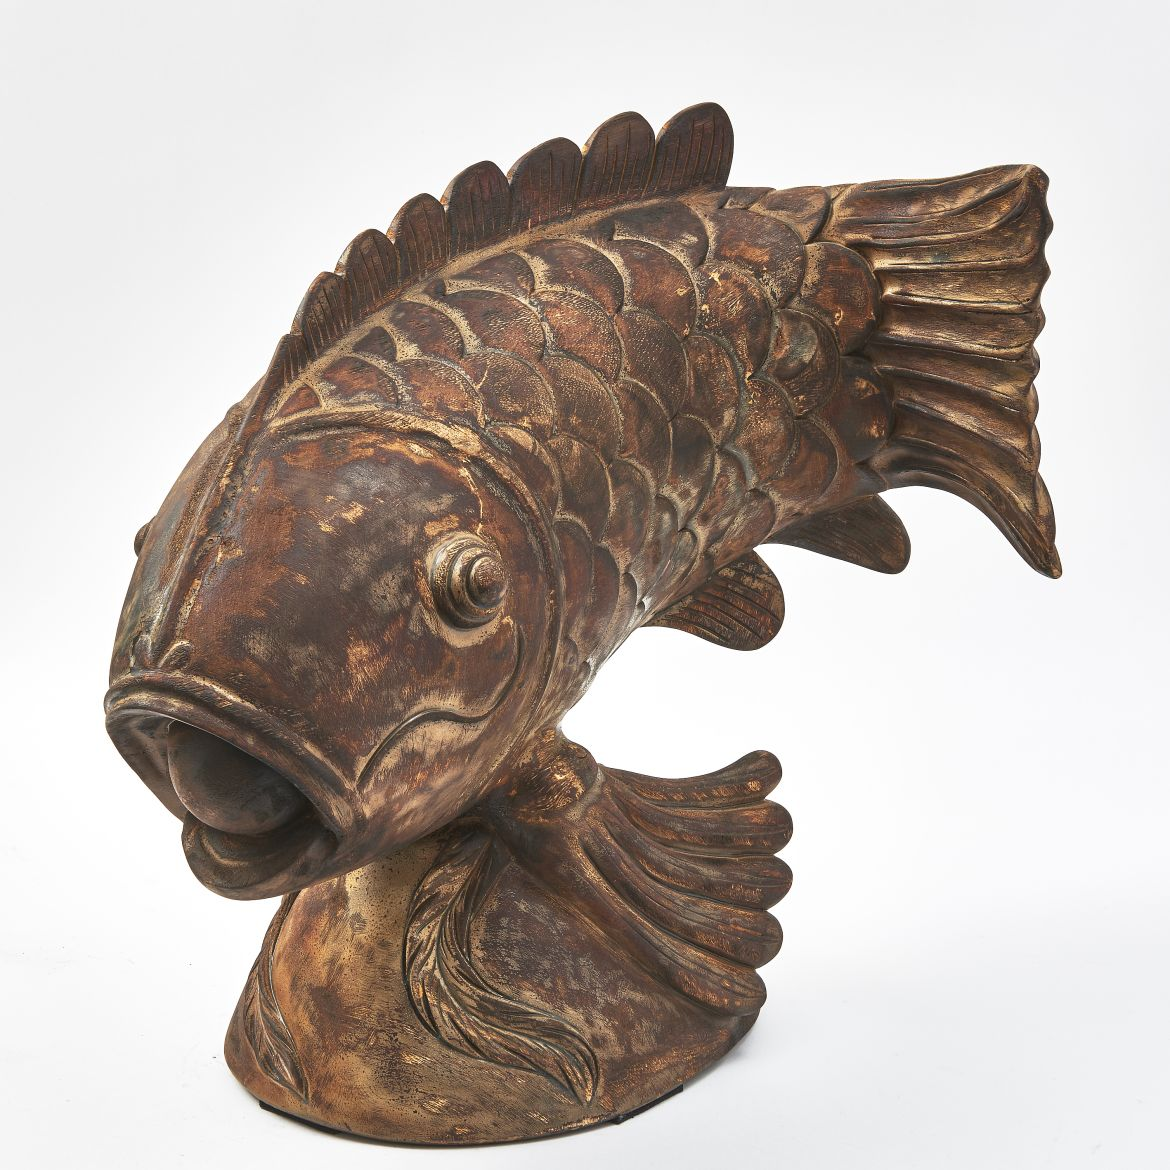 Japanese Carved Wood Carp